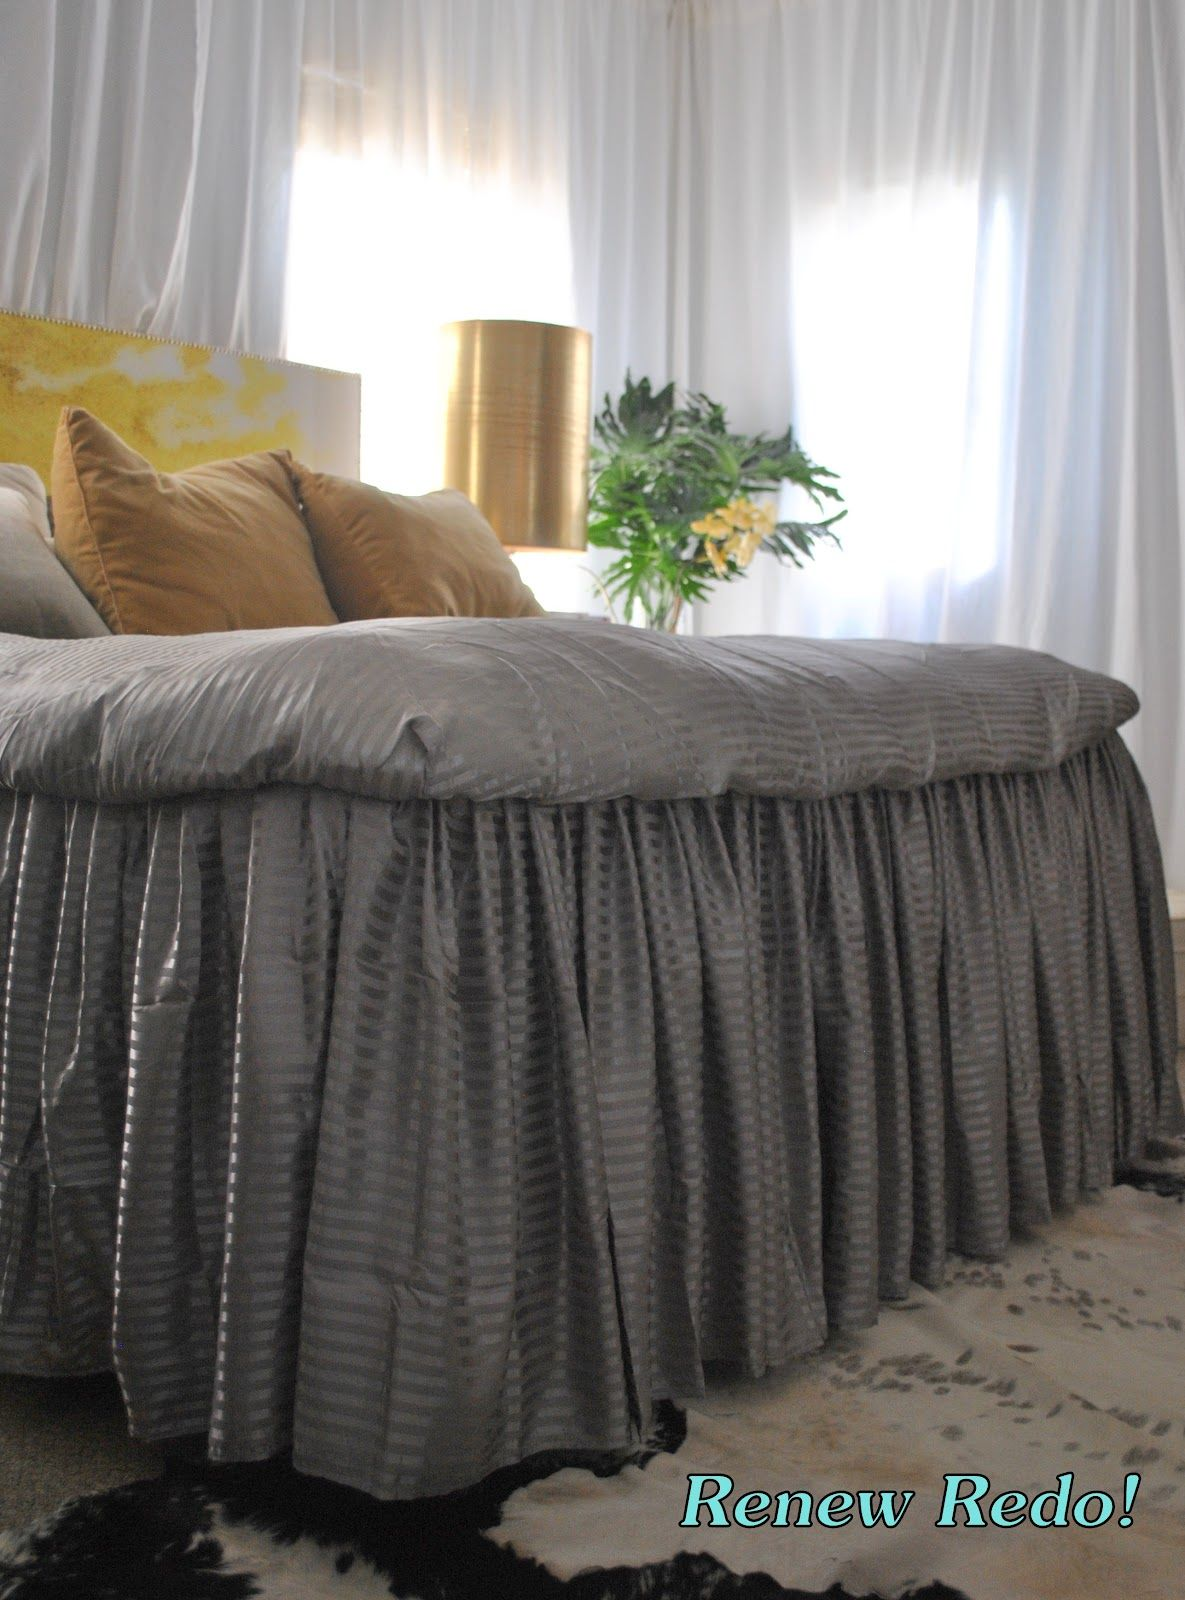 Cute Quot Bed Skirt Quot Idea Ruffles Hang From Fitted Sheet